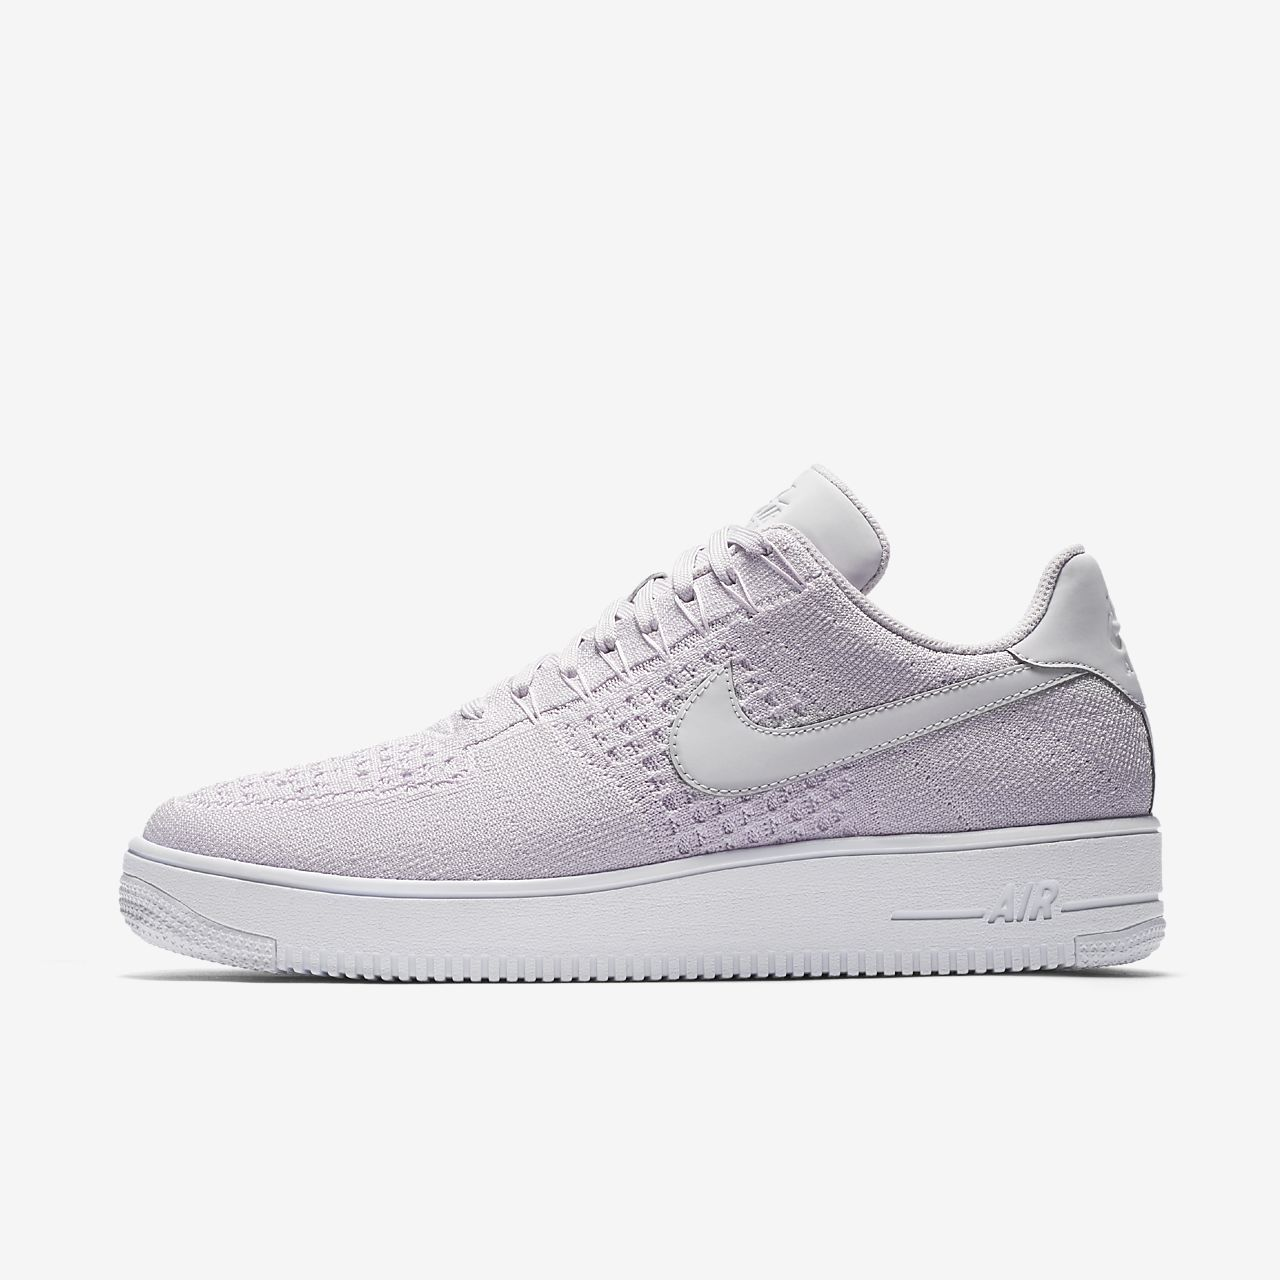 nike air force 1 low uomo bianche